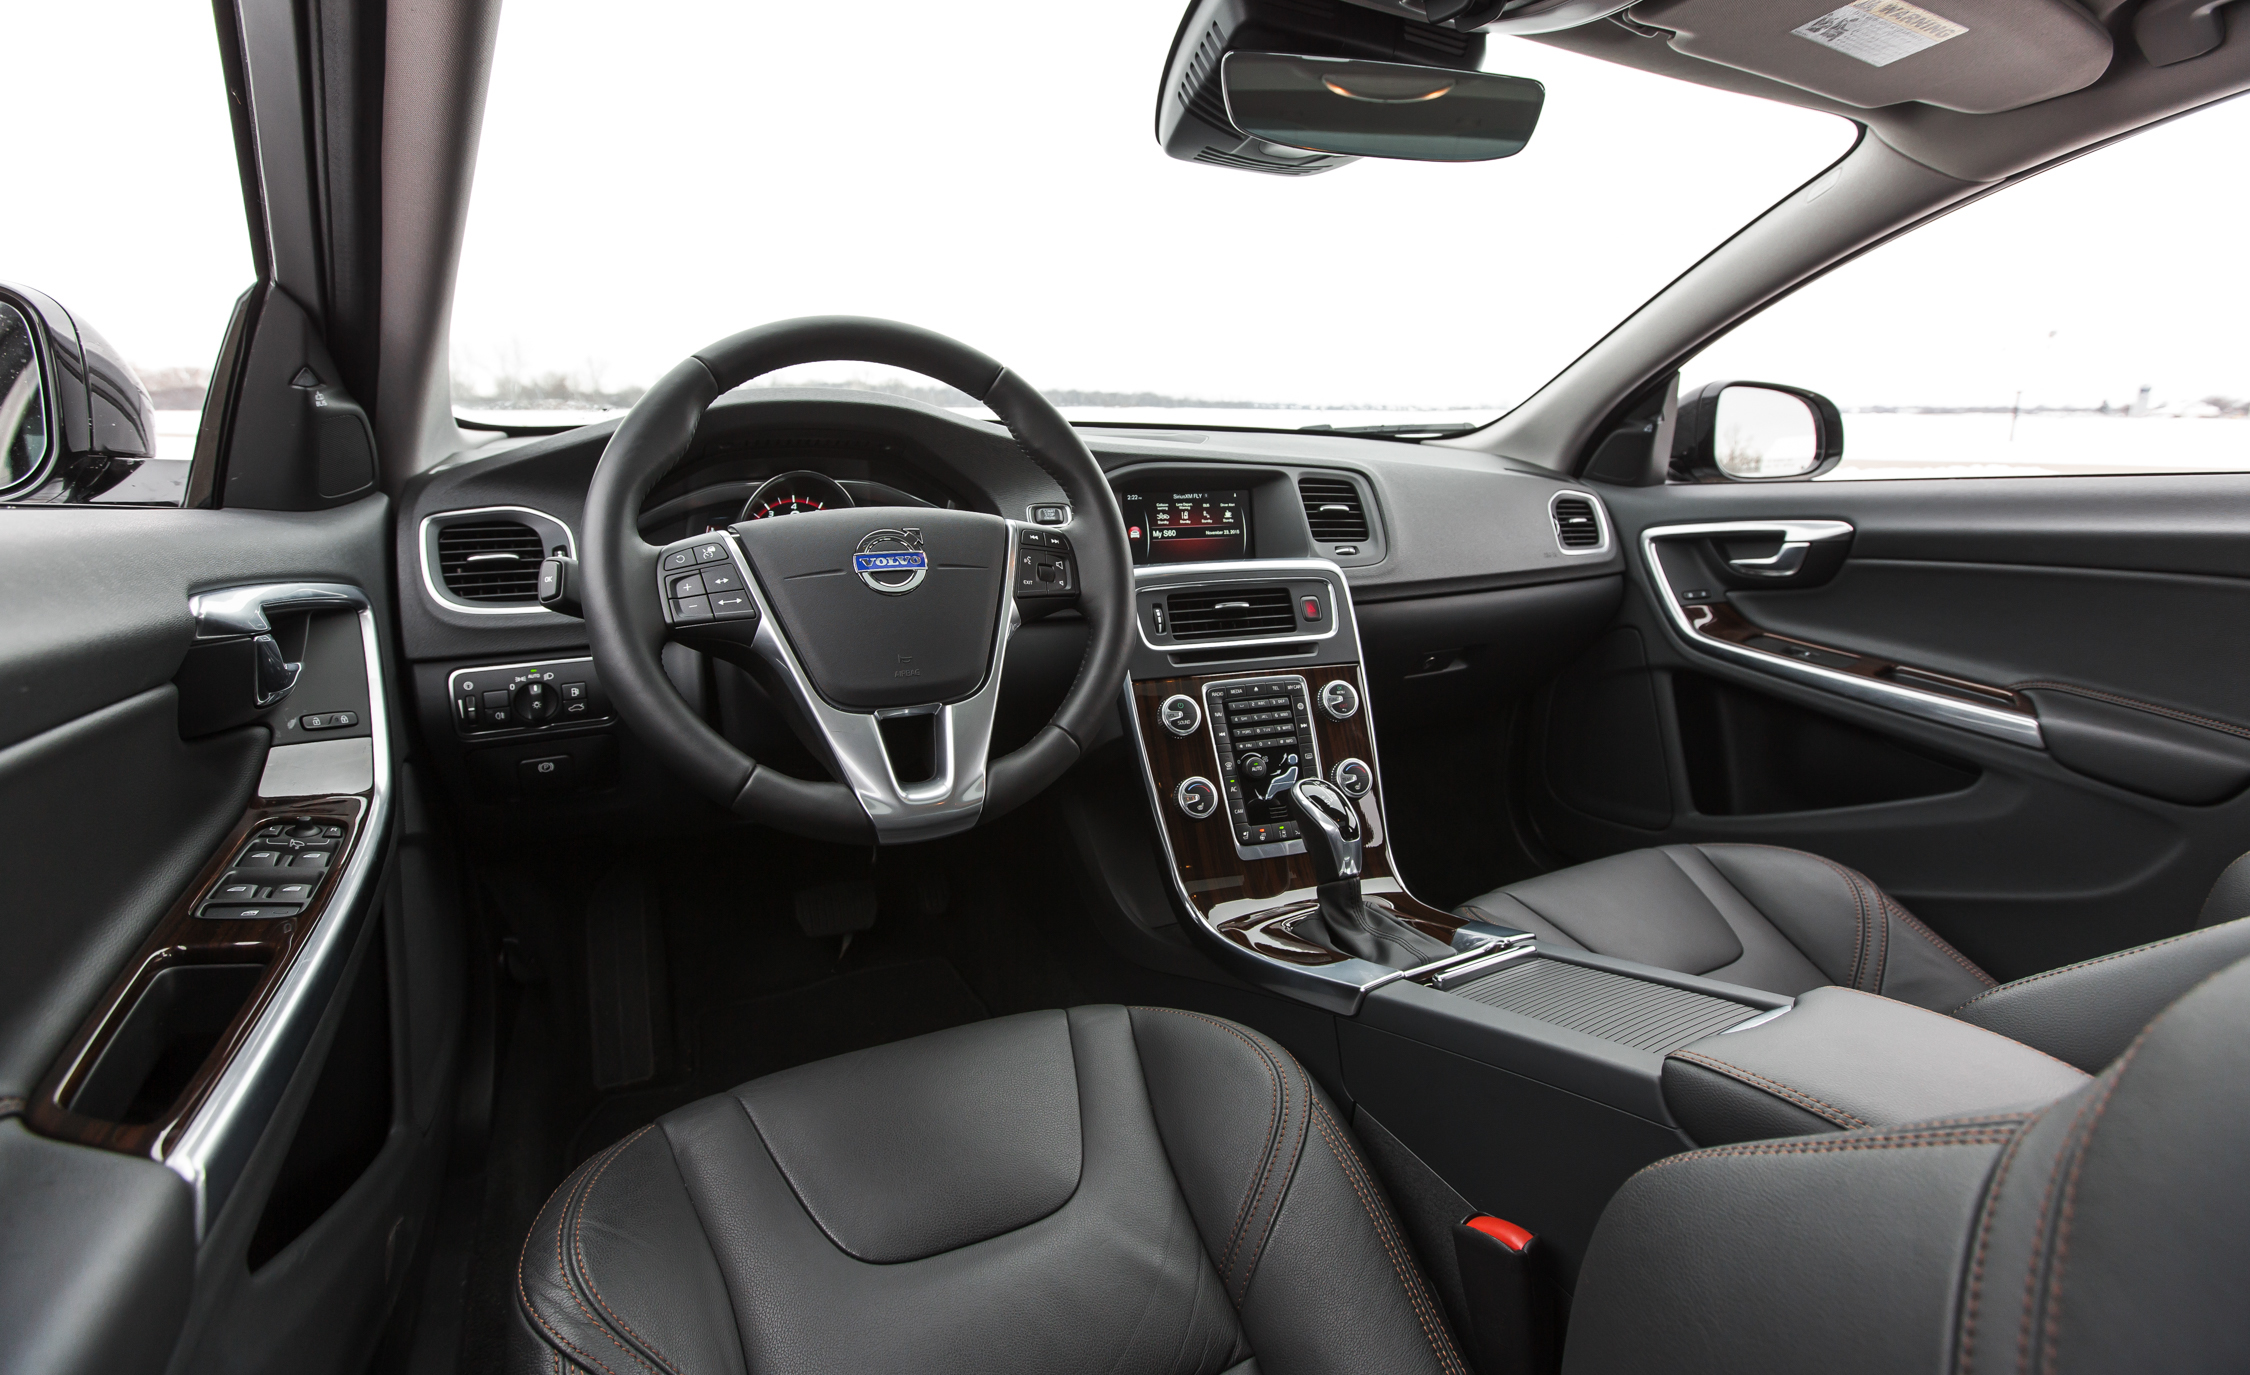 2016 Volvo S60 Cross Country Interior Front (Photo 14 of 21)